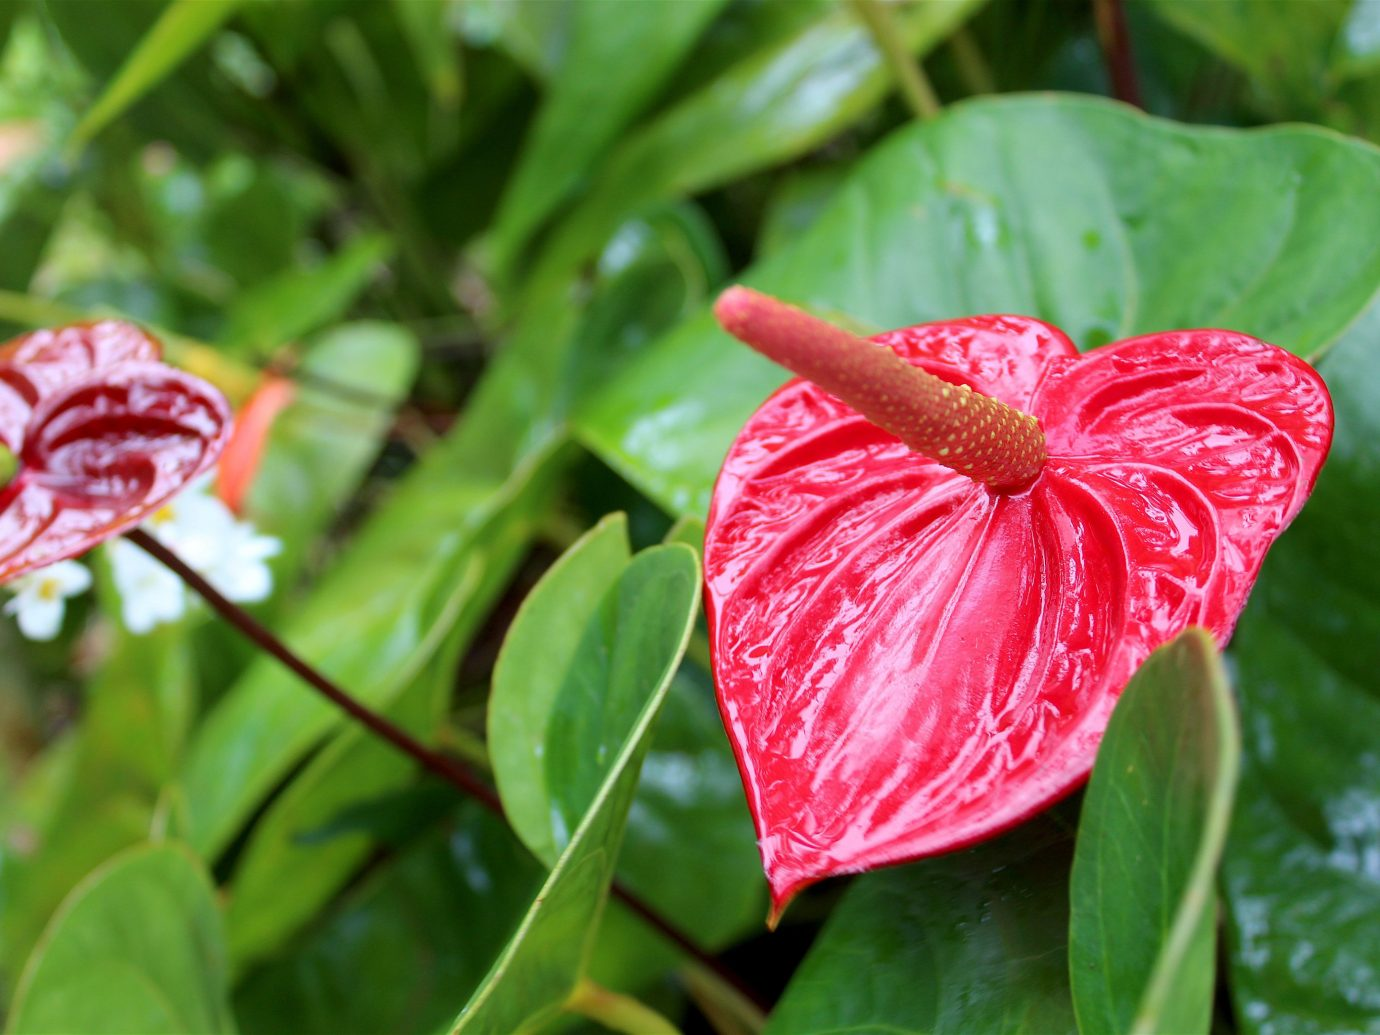 Trip Ideas tree flower plant outdoor flora Nature red green botany leaf macro photography land plant petal close up flowering plant wildflower